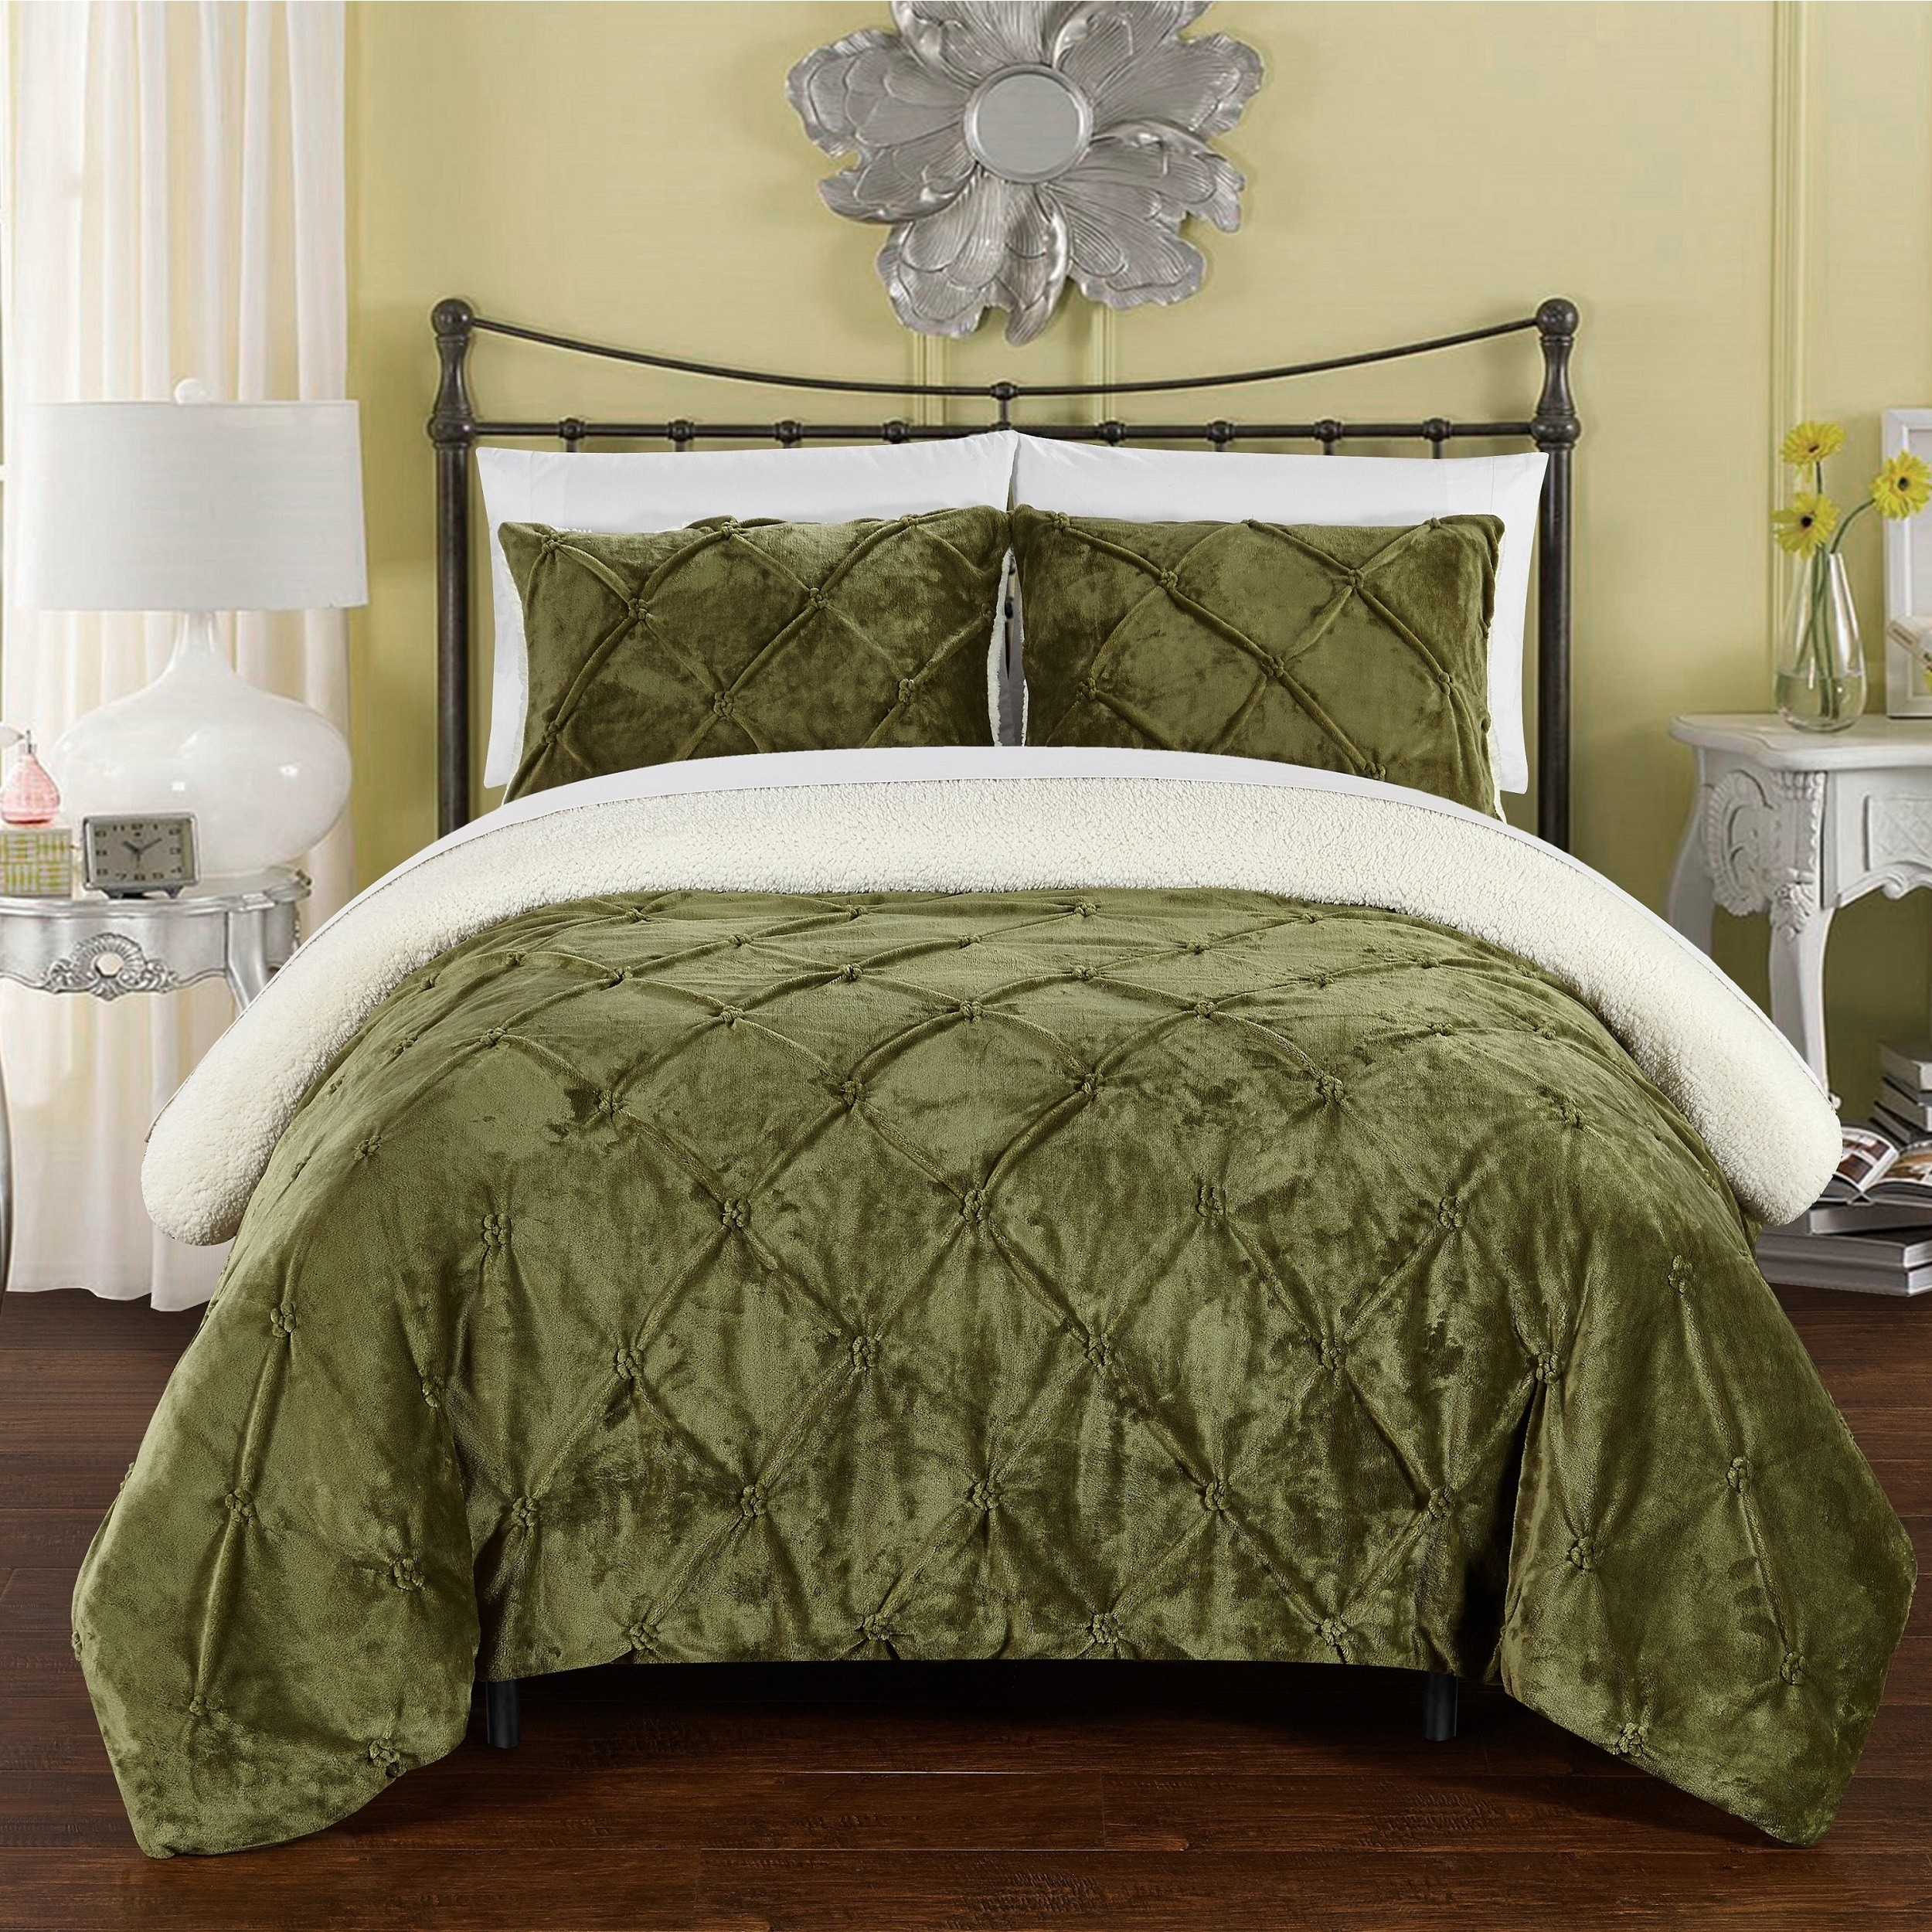 Gracewood Hollow George 3 Piece Bed In A Bag Green Comforter Set On Sale Overstock 19972943